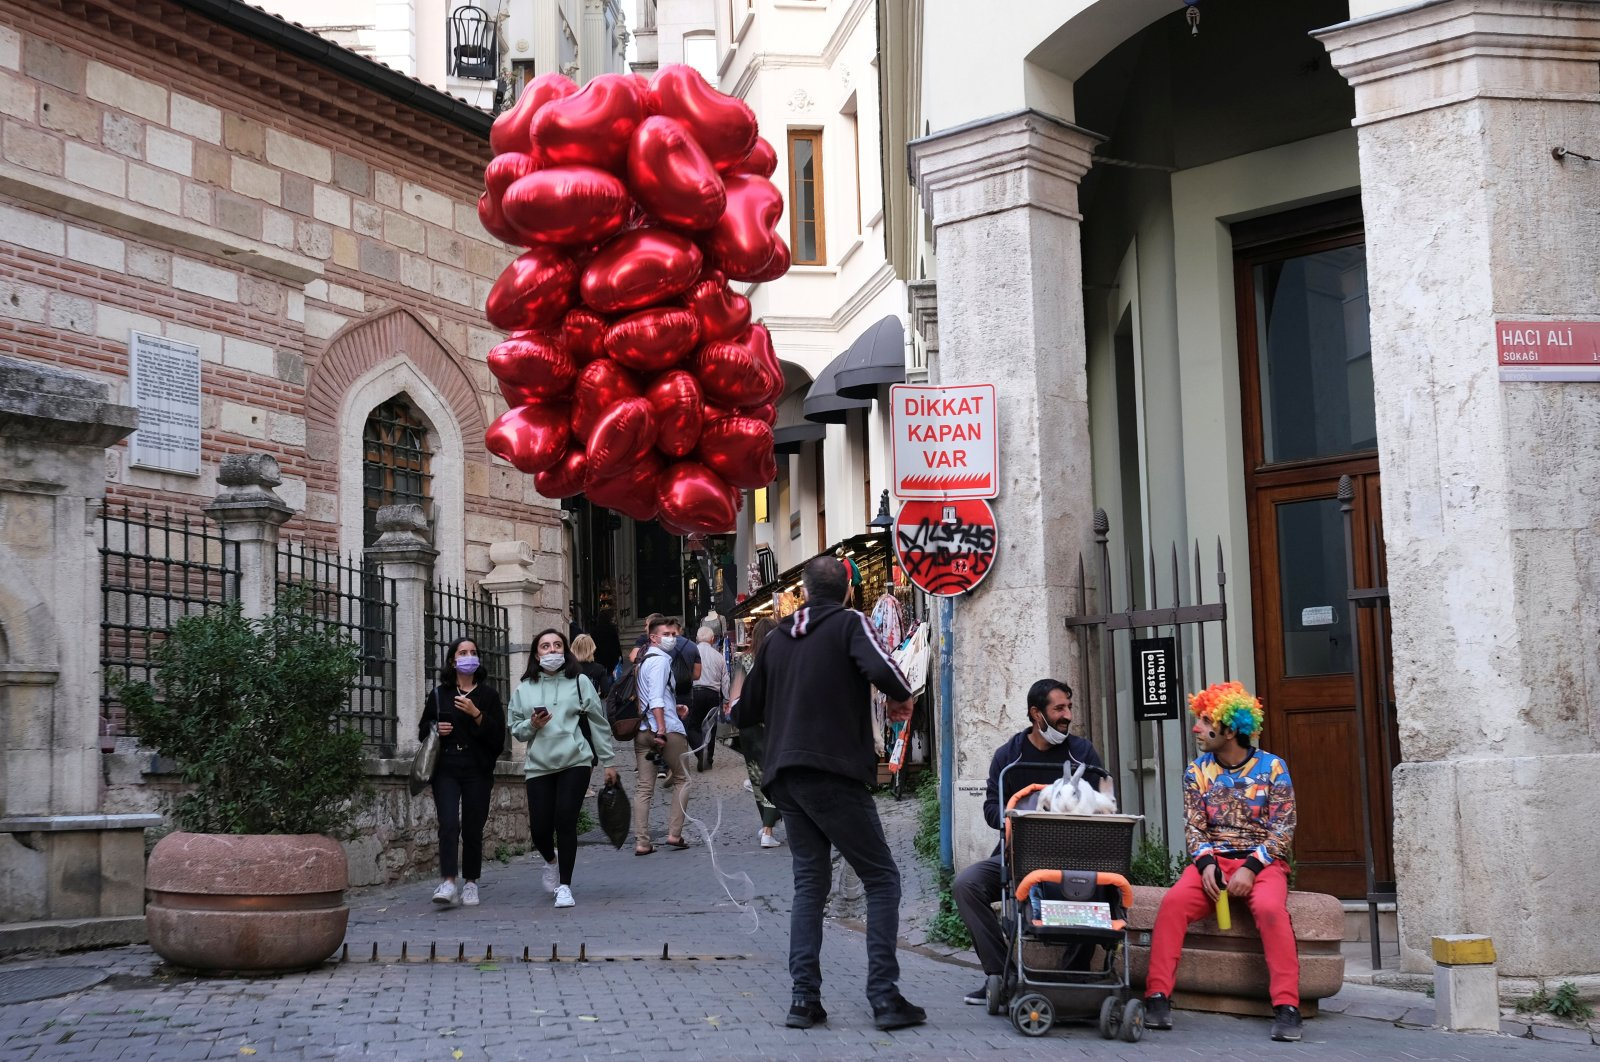 People wearing protective face masks look at a street vendor selling heart-shaped balloons, as the coronavirus disease (COVID-19) outbreak continues, in Istanbul, Turkey October 27, 2020. (Reuters Photo)